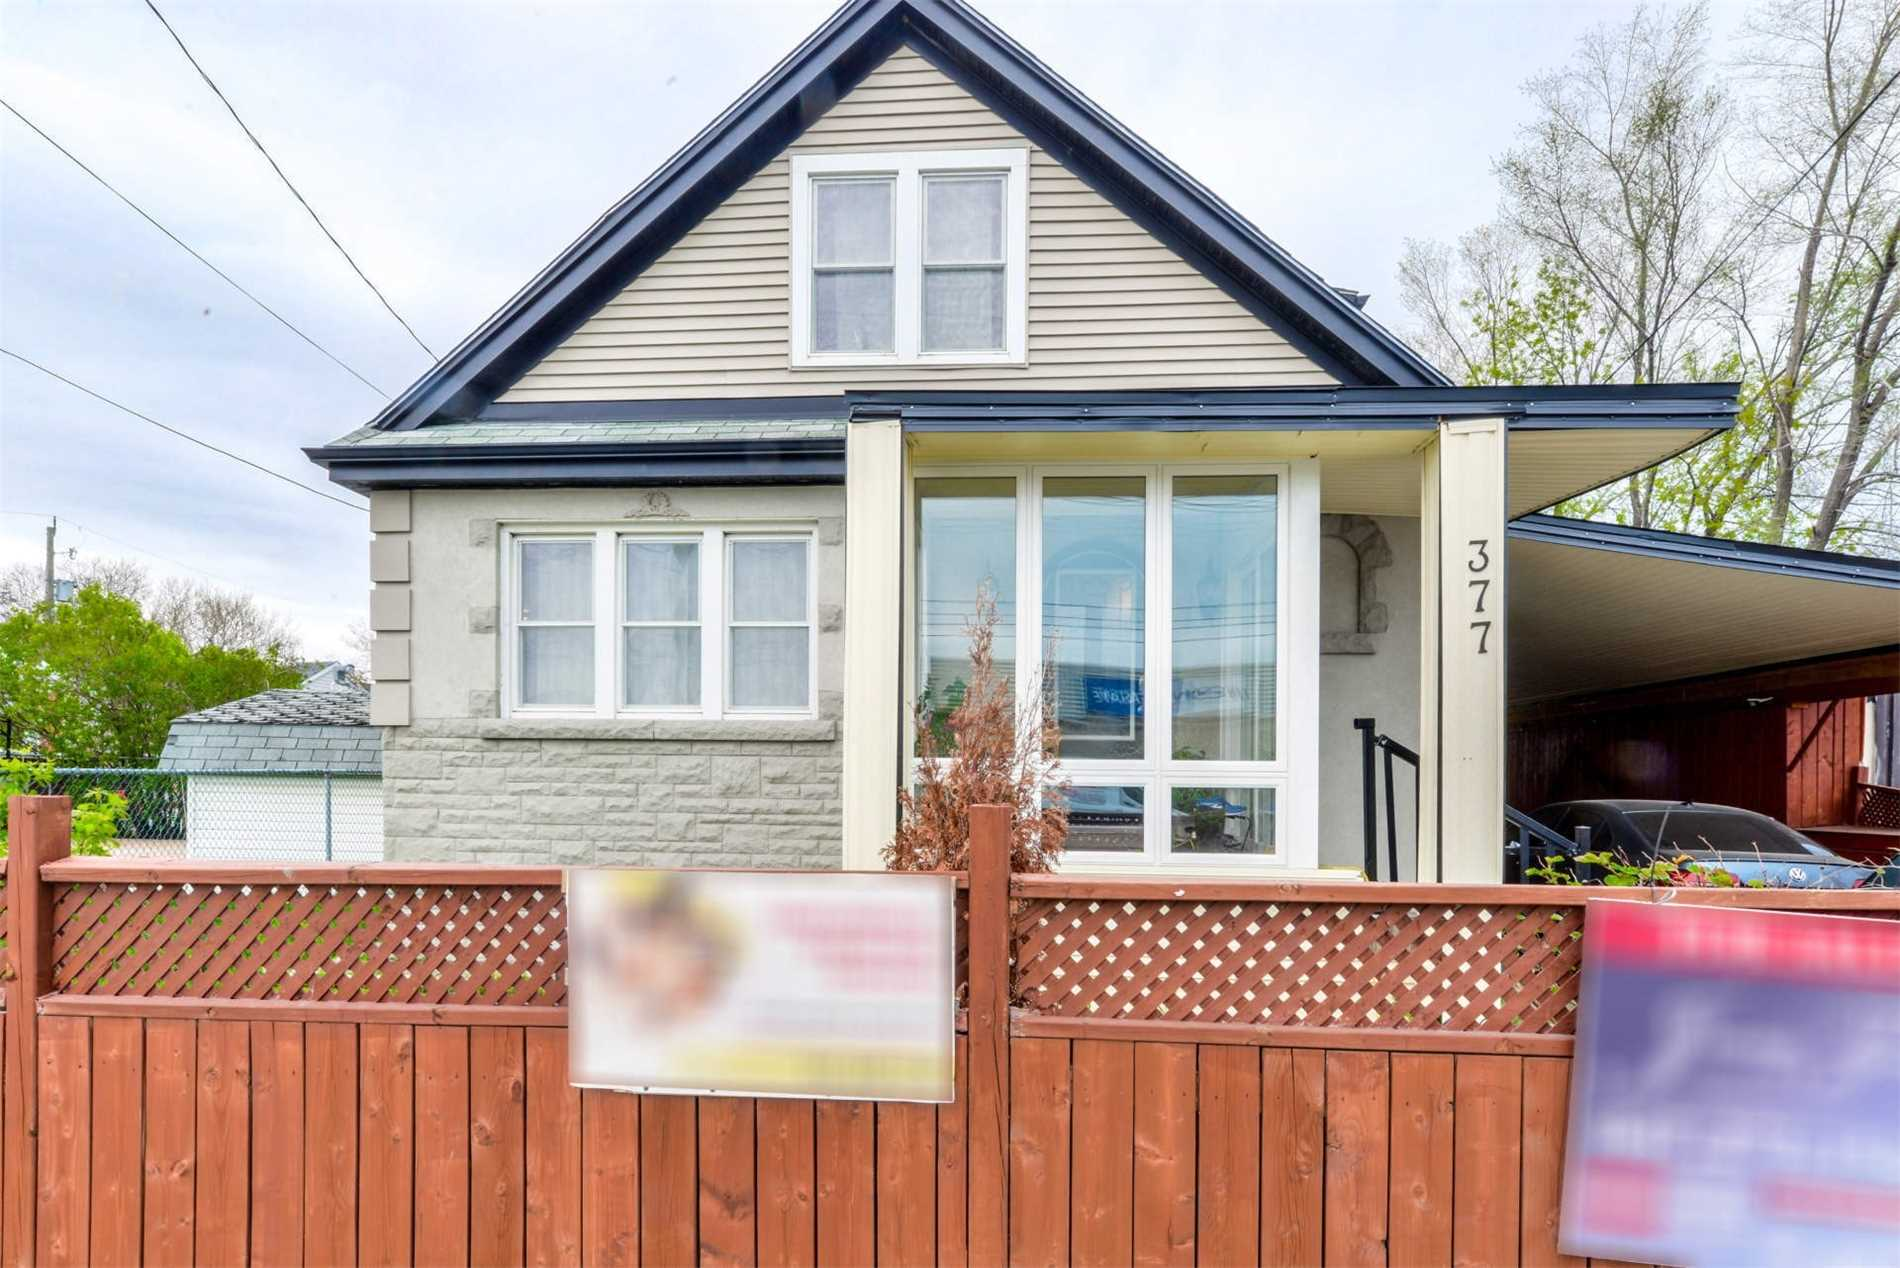 No Expenses Spared! Just Move In Ready! This Cozy Spacious Bungalow Boosts Laminate Thru/Out, New Deck (18),New Covered Drwy (4 Cars), Stucco Siding, A/C(18) , Solarium Covered Porch (18), Modern Kitchen & Appl, Updated Baths, 2nd Flr Lndry & Bsmt Lndry. Freshly Painted!  W/O To Entertainers Deck & Yard A New Walkway (18) & Nice Sized Stucco Shed (17) W Behind Extra Top Covered Strge. Bsmt Apt Is Equipped W Nice Sized 2 Brm, Living/Dining Kitchen. Must See!